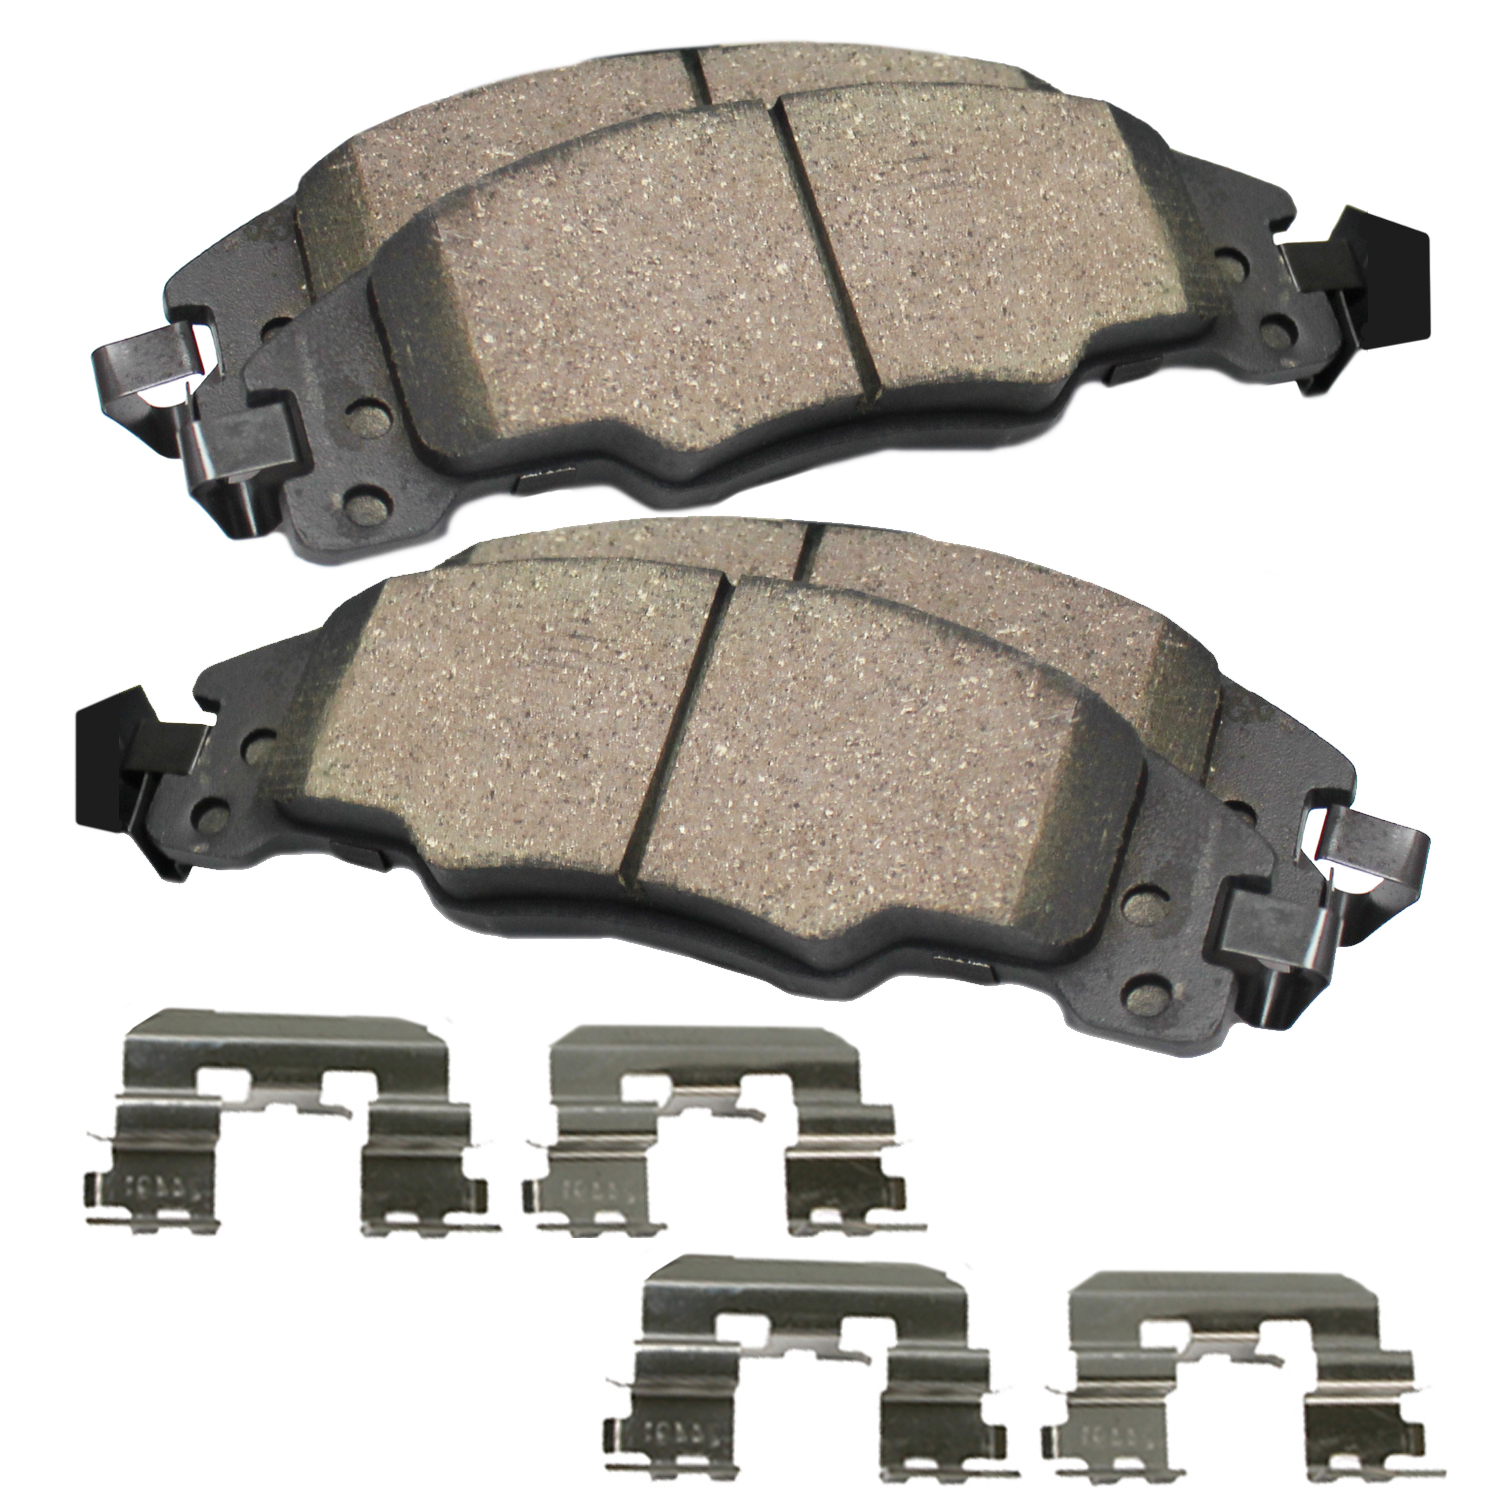 Rear Ceramic Brake Pads w/Hardware Kit for 1993-2000 Lexus LS400 - [1995-1998 Toyota Supra Base]